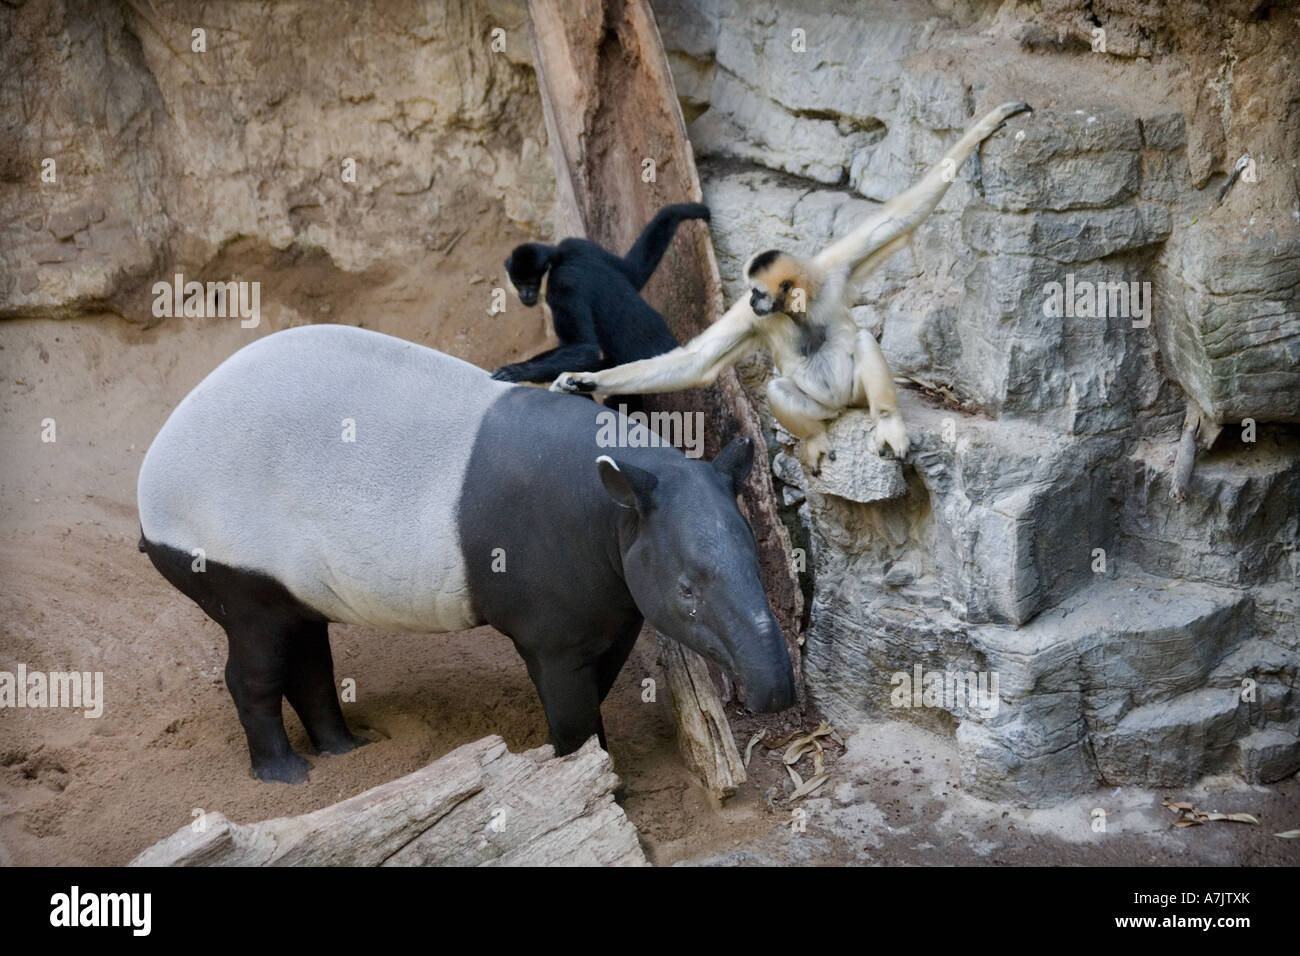 Two Gibbons Grooming A Tapir At The Bronx Zoo As The Animal Stands